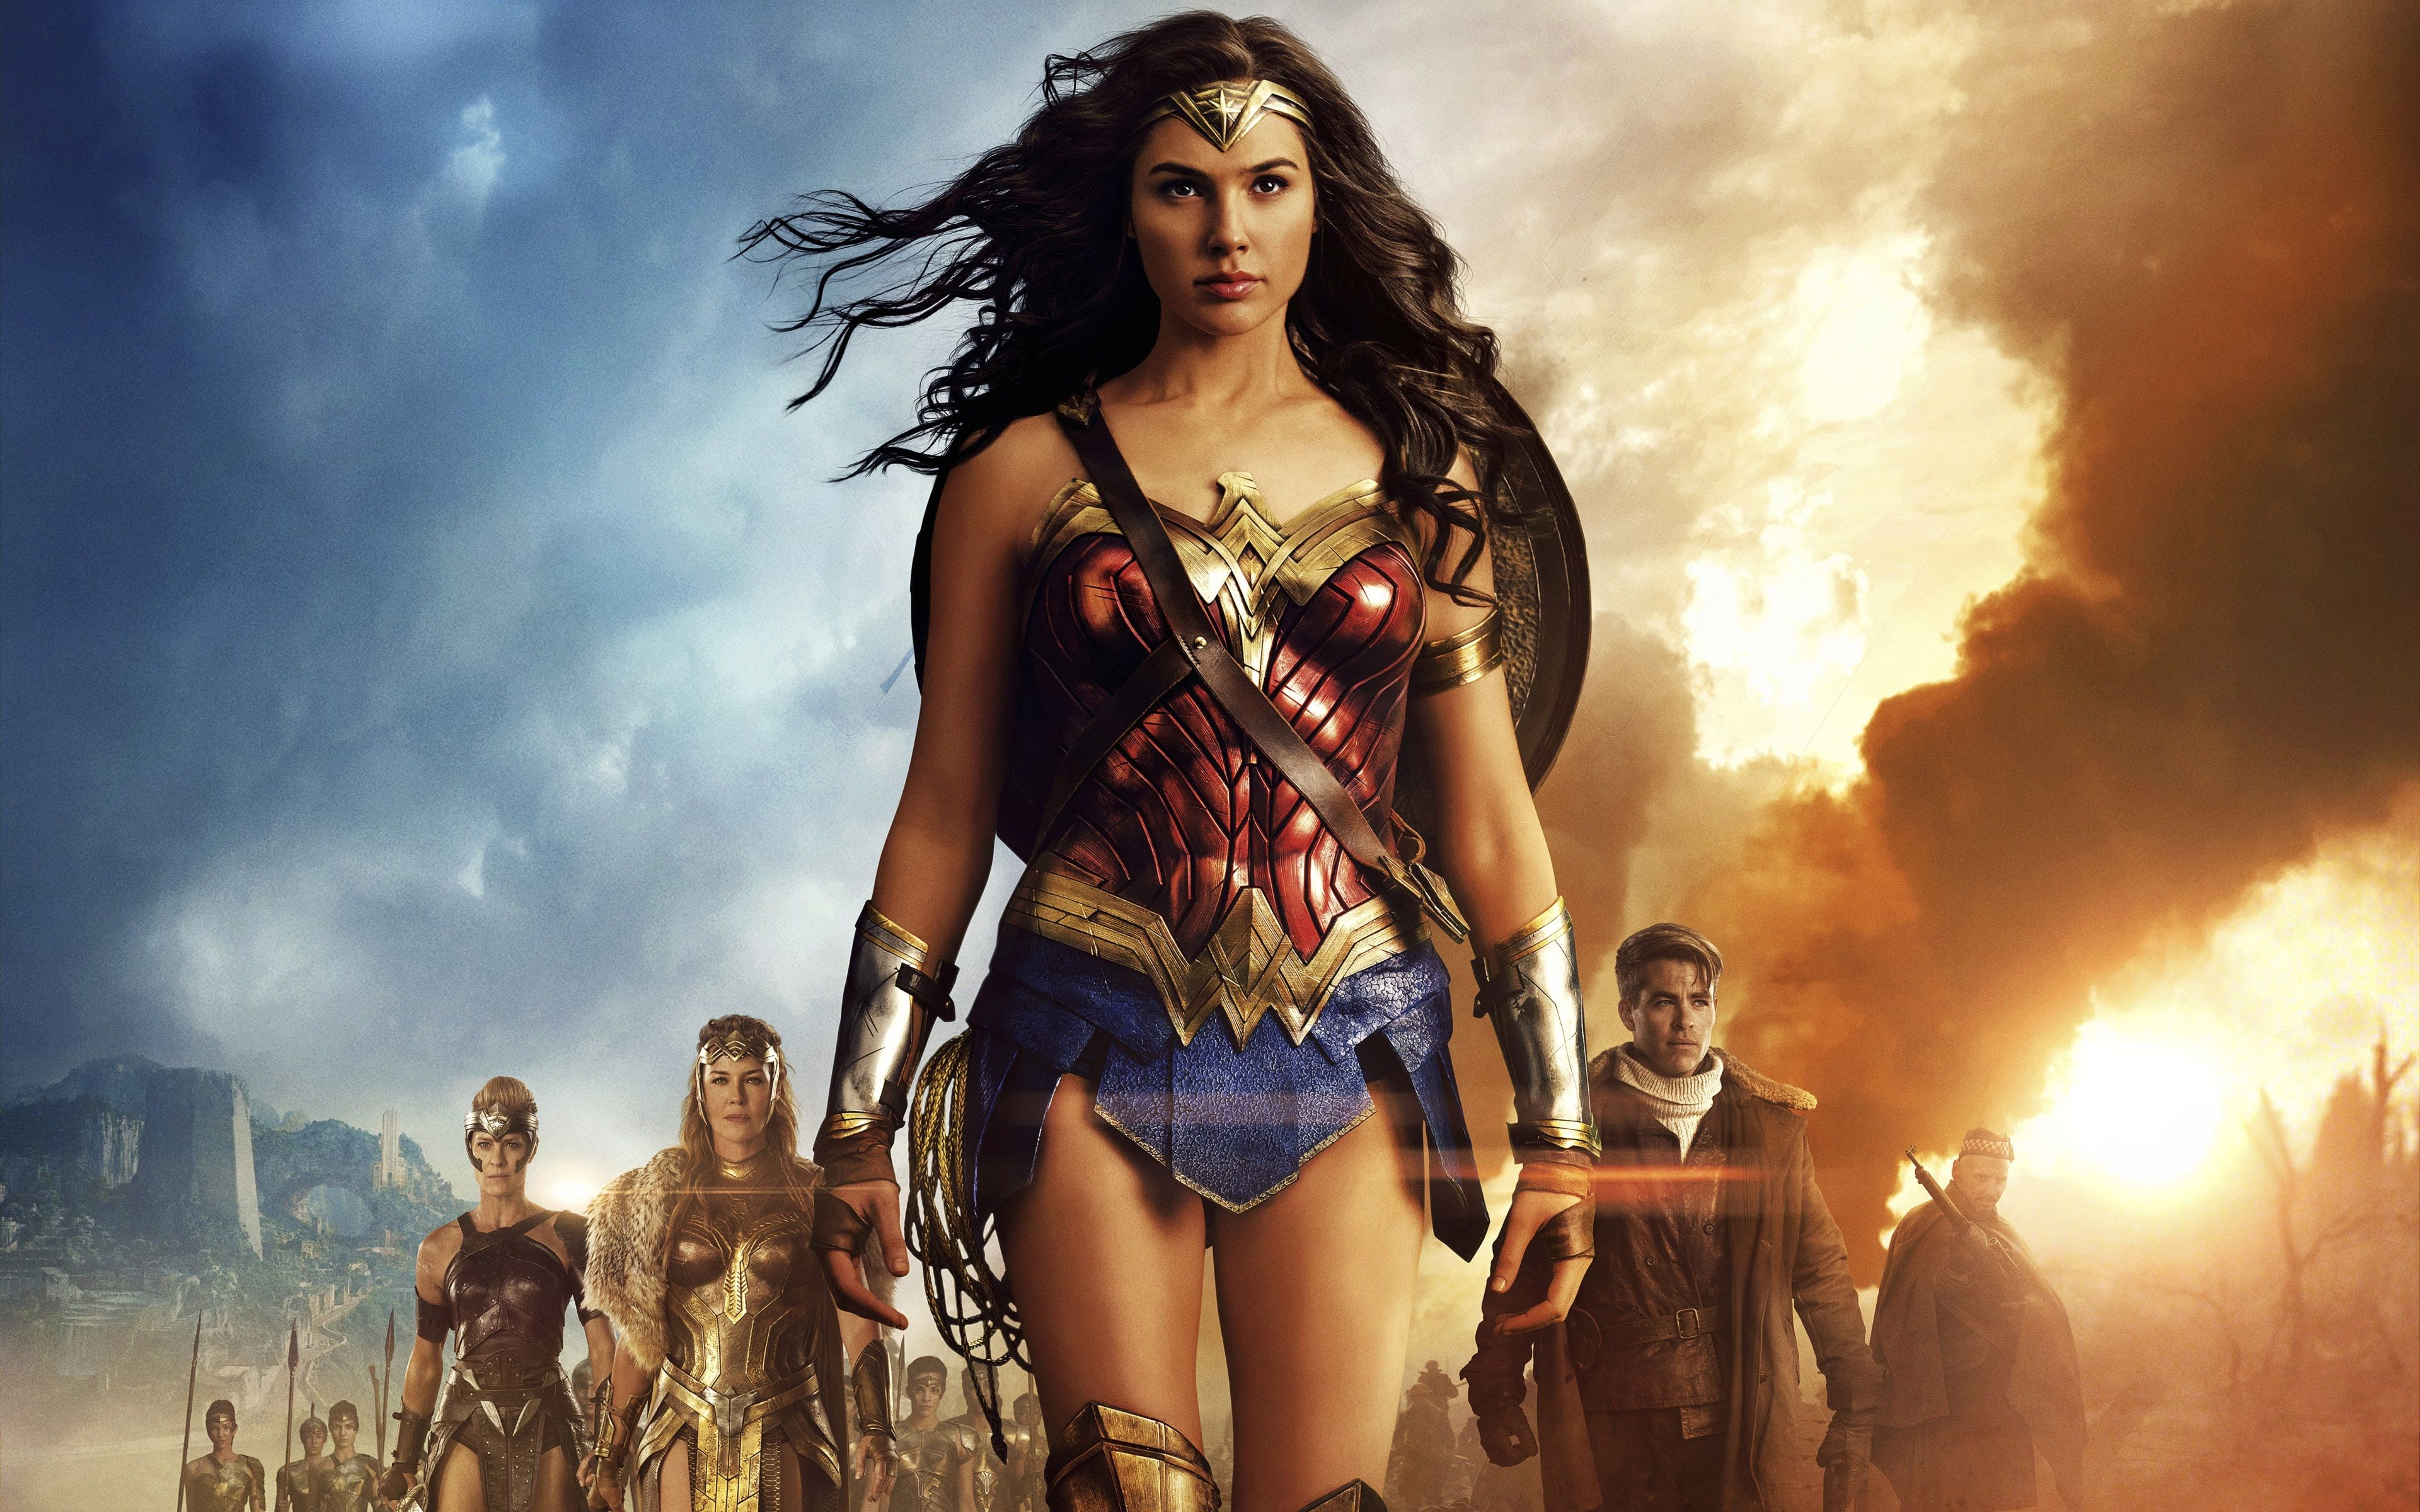 3840x2400 Wonder Woman 4k Hd Desktop Background Wallpaper Gal Gadot Wonder Woman Wonder Woman Movie Wonder Woman